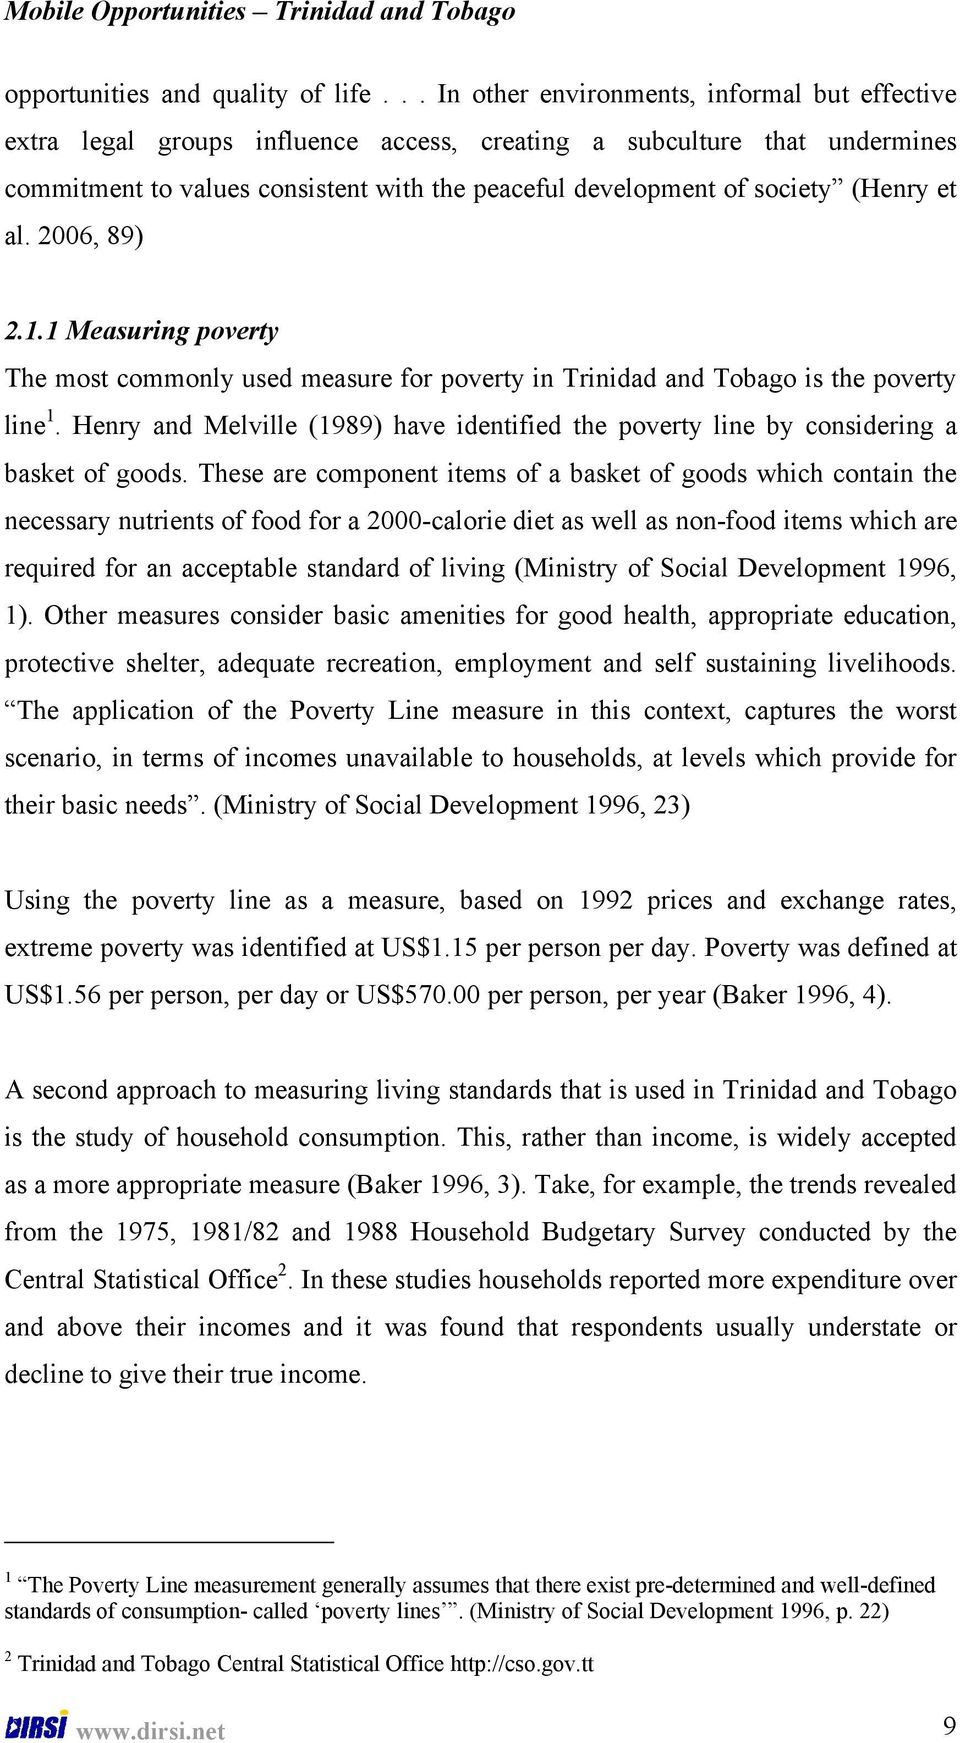 (Henry et al. 2006, 89) 2.1.1 Measuring poverty The most commonly used measure for poverty in Trinidad and Tobago is the poverty line 1.